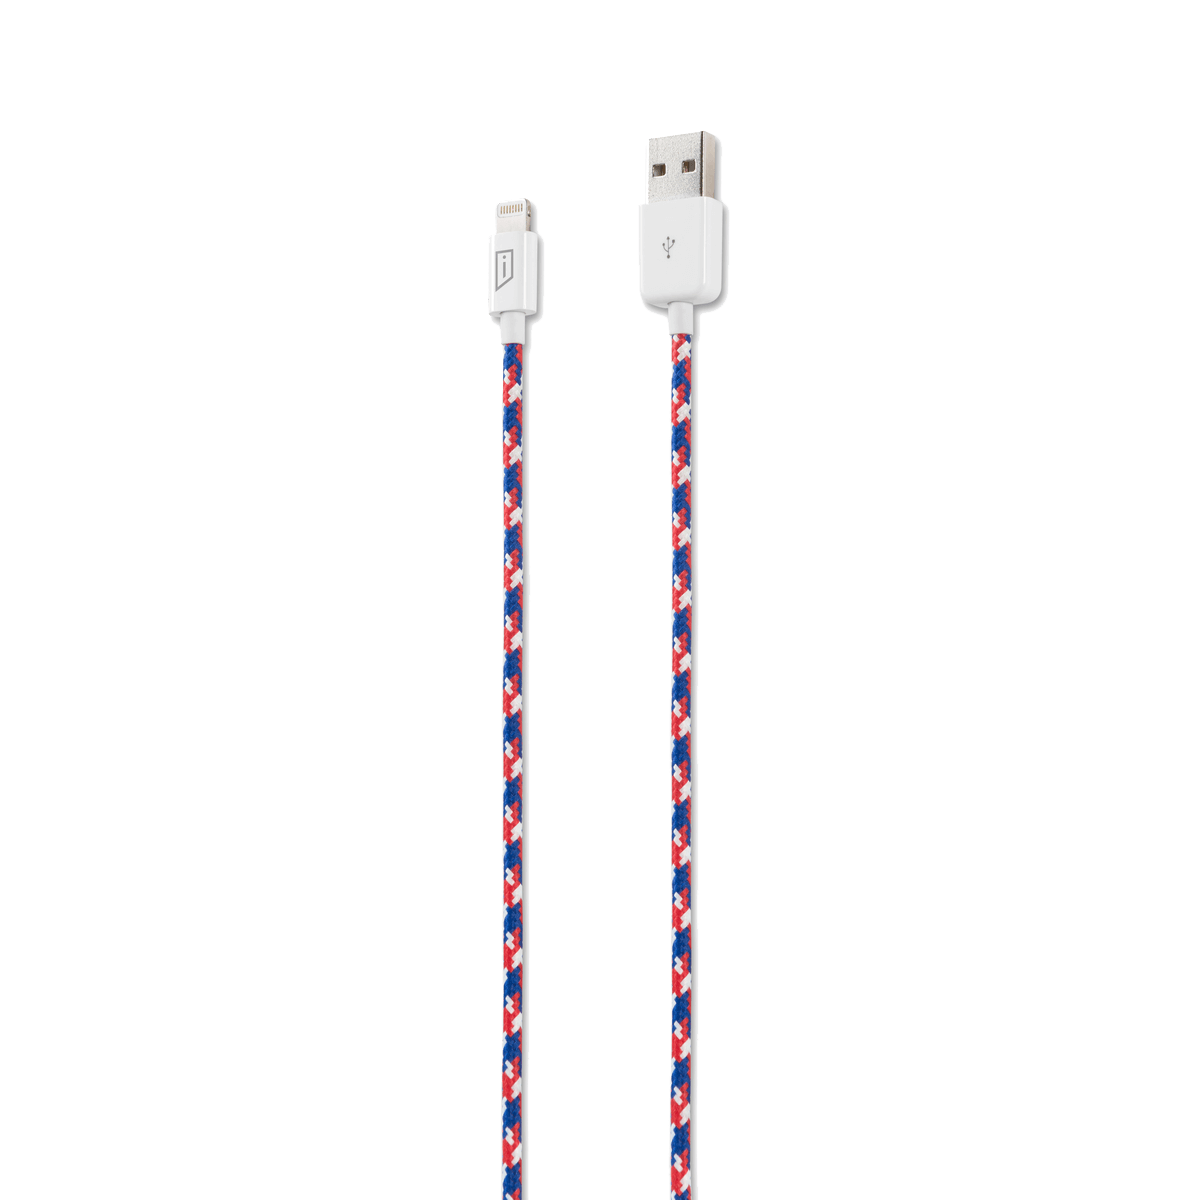 iStore Lightning Charge 4ft (1.2m) Marbled Woven Cable (Red/White/Blue)